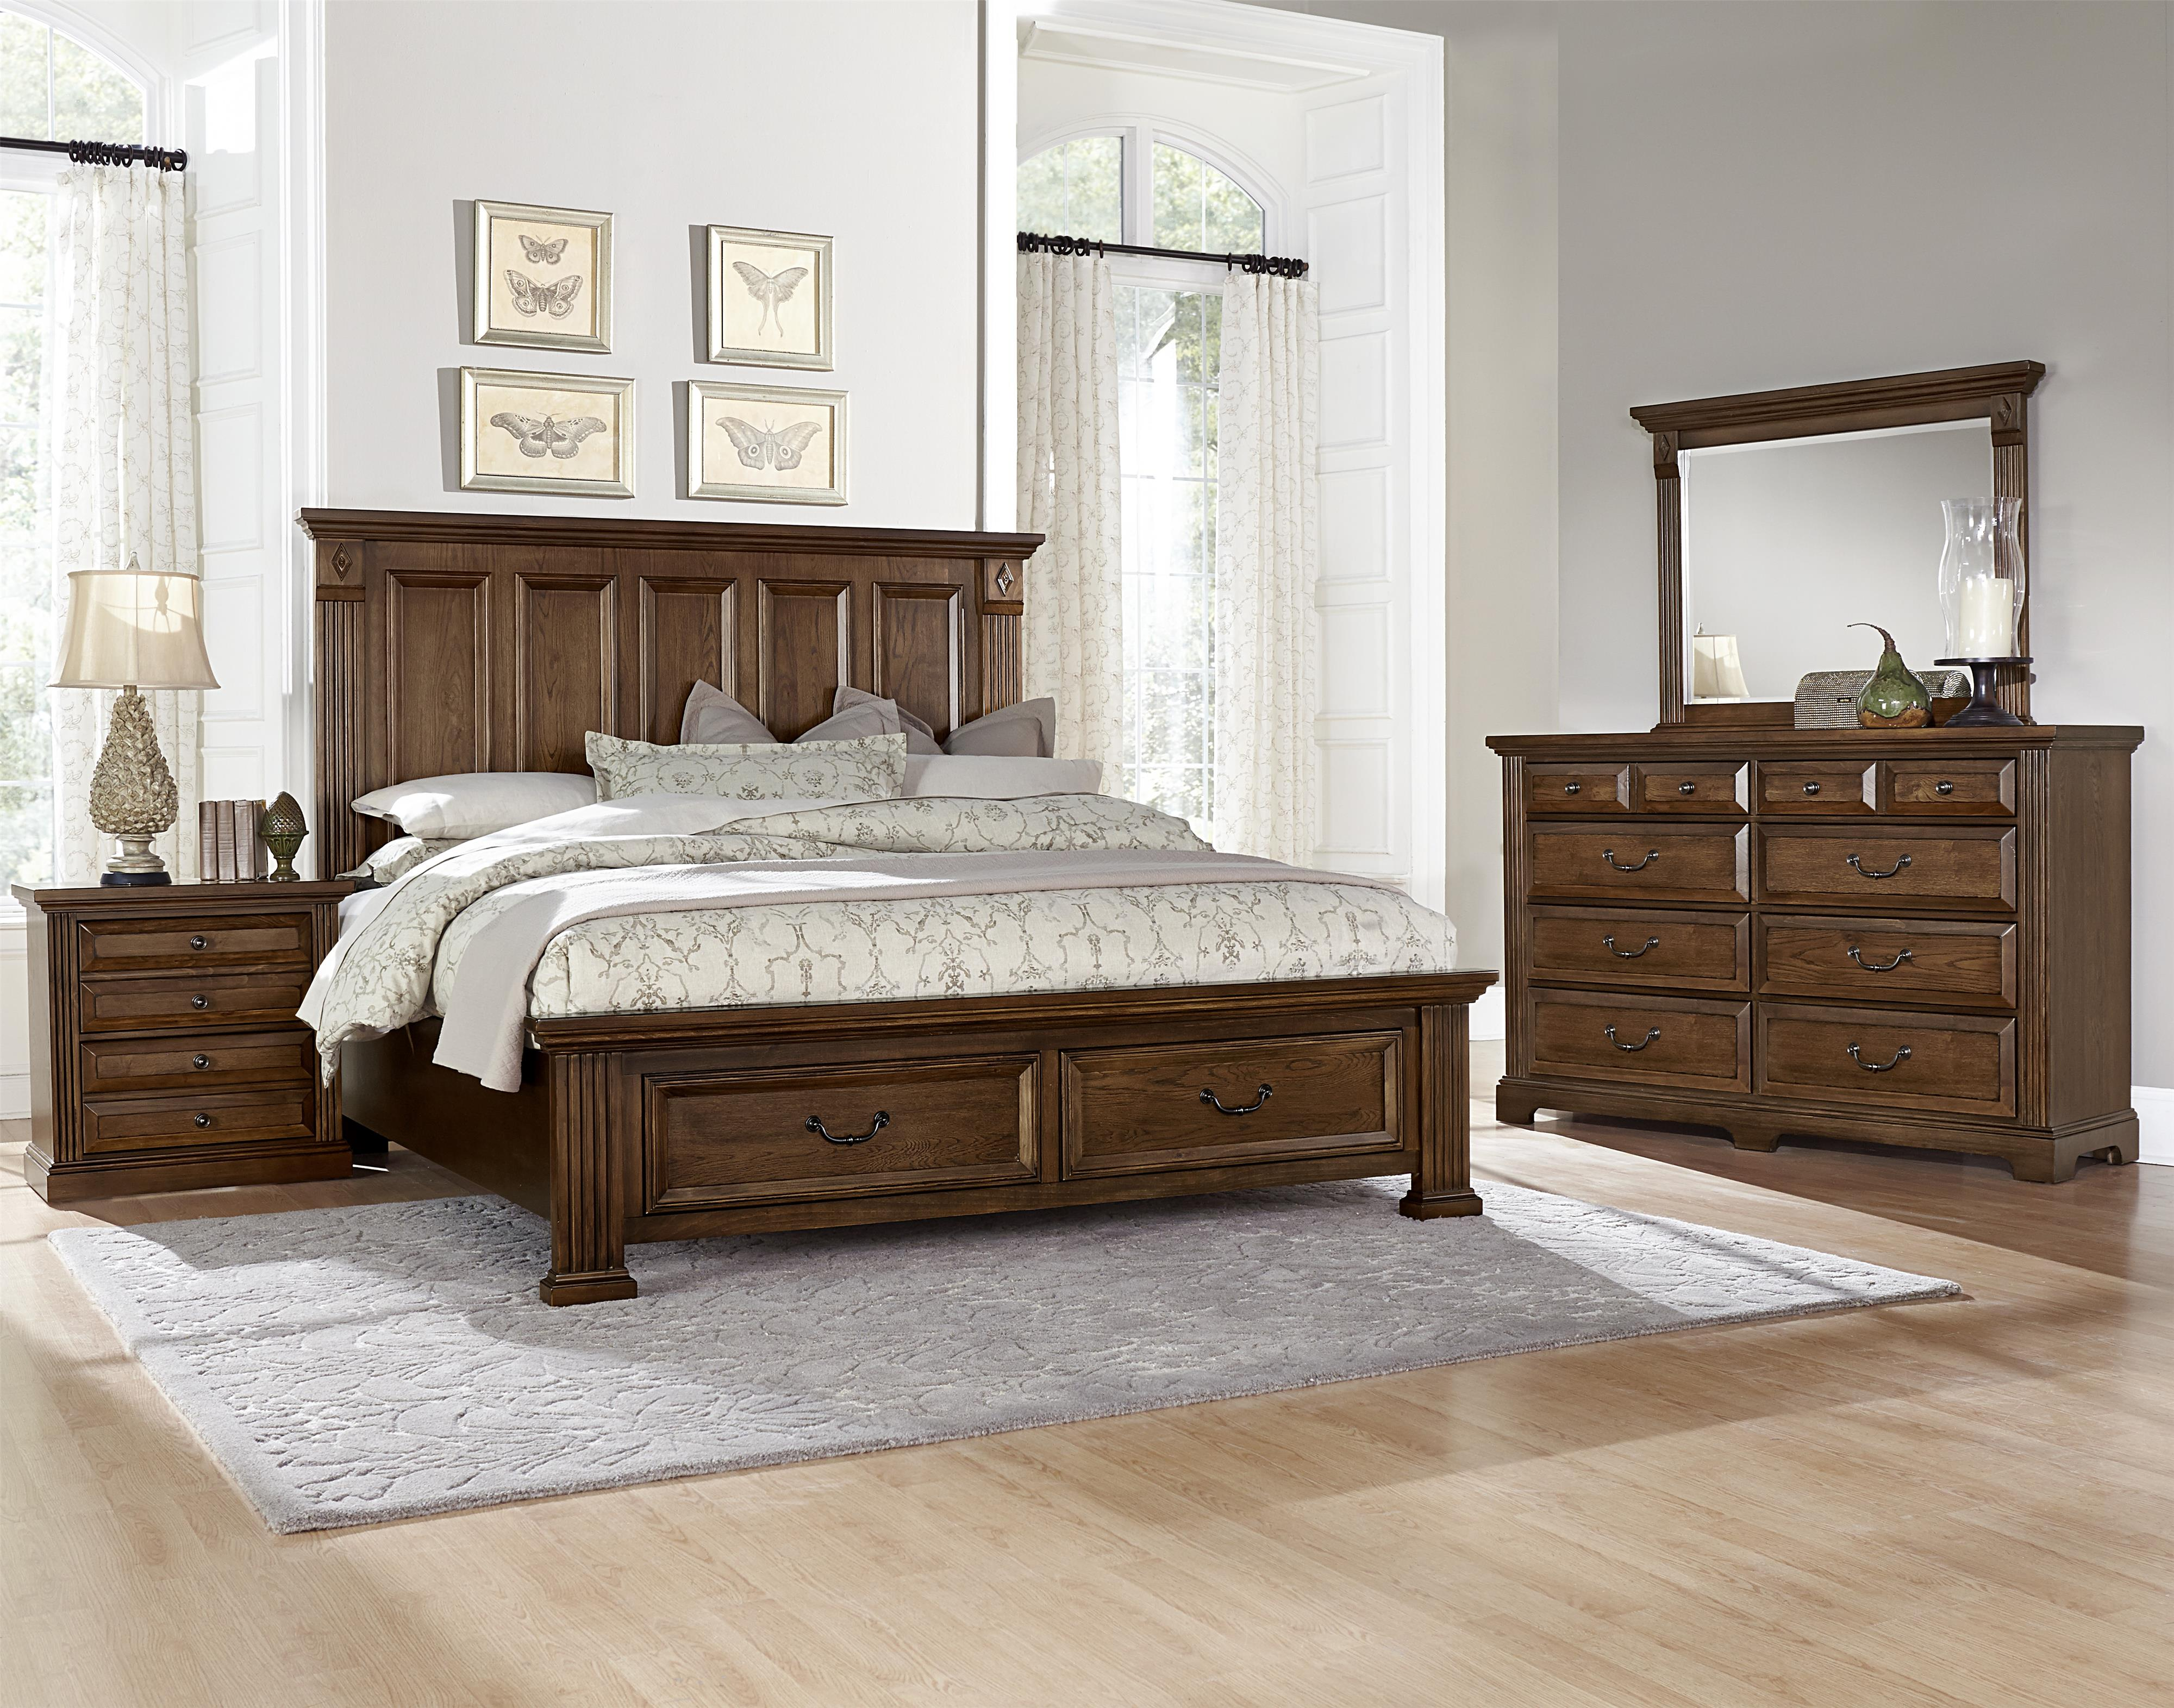 Vaughan Bassett Woodlands King Bedroom Group - Item Number: BB97 K Bedroom Group 4